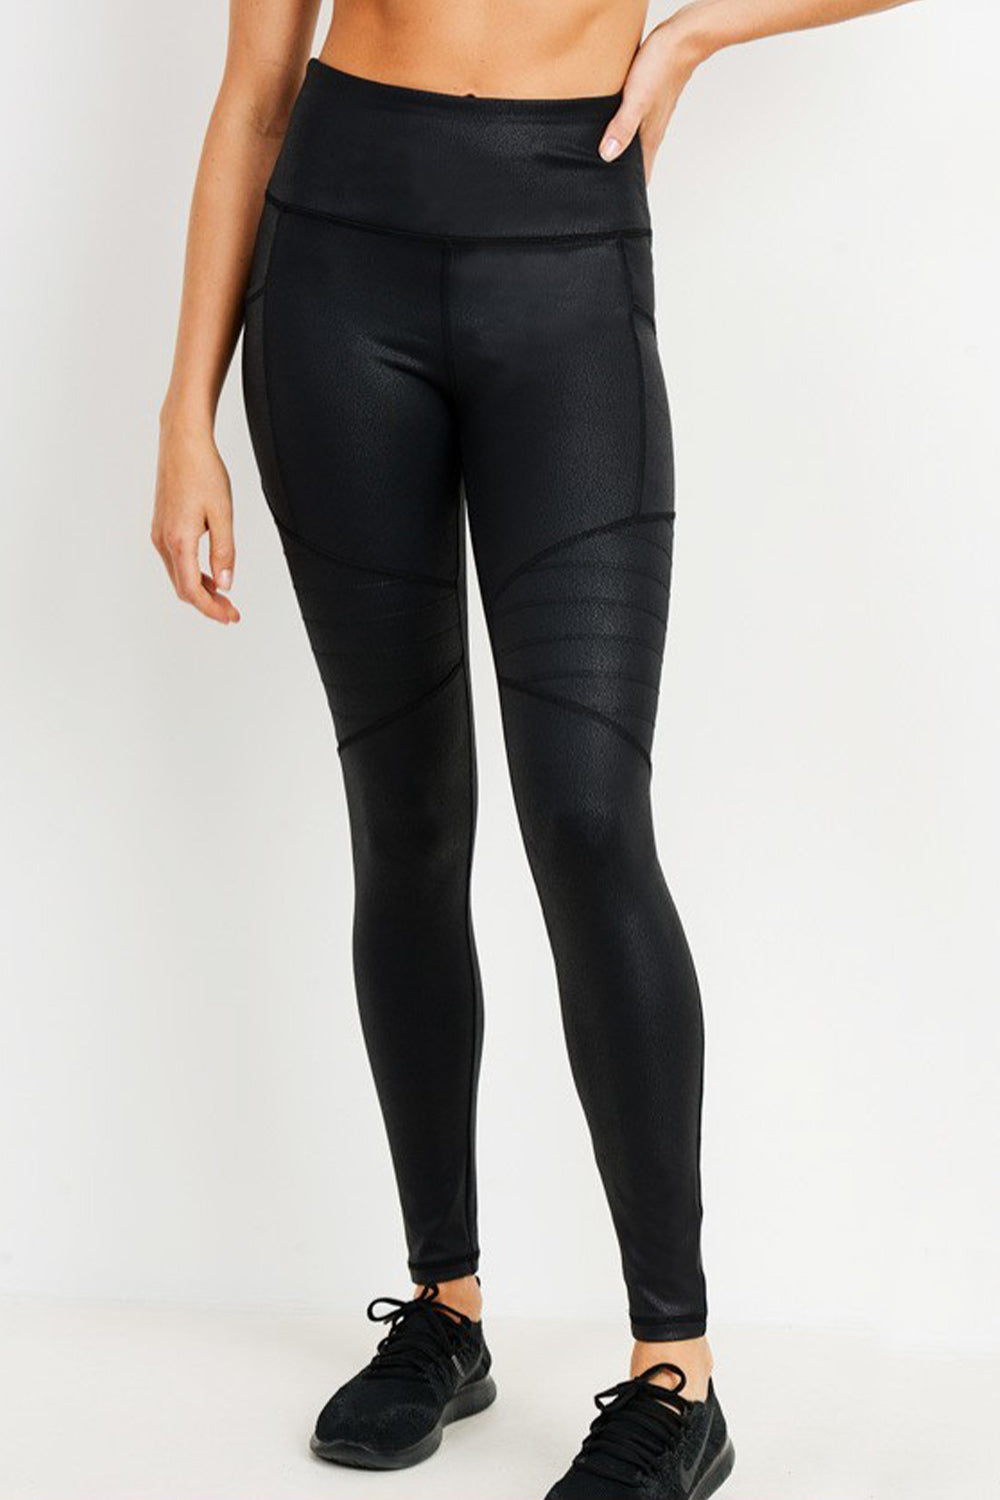 Black High Waisted Ribbed Workout Leggings with Metallic Sheen